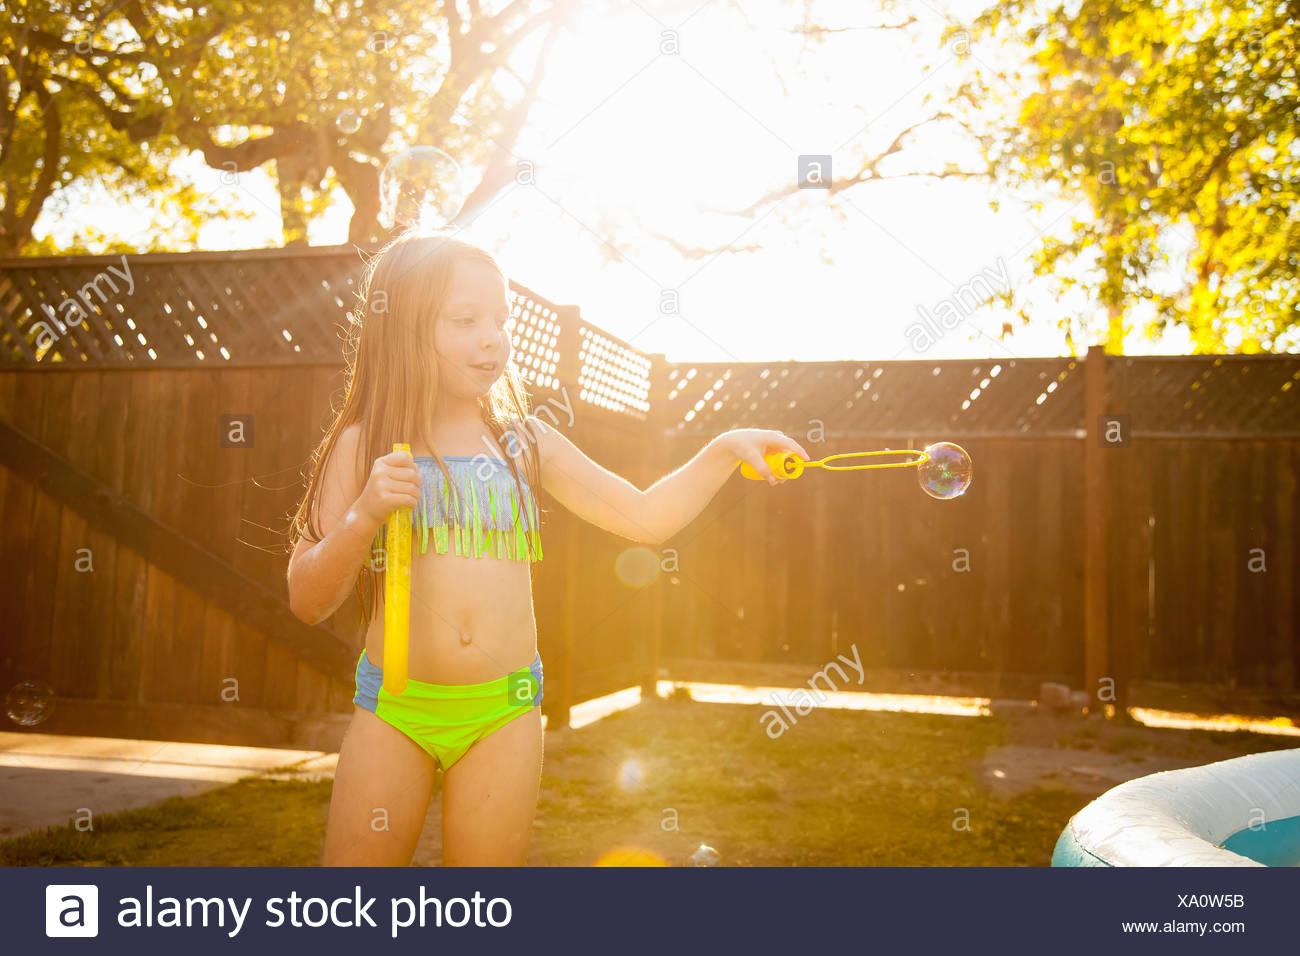 Girl making bubbles with bubble wand in garden Stock Photo